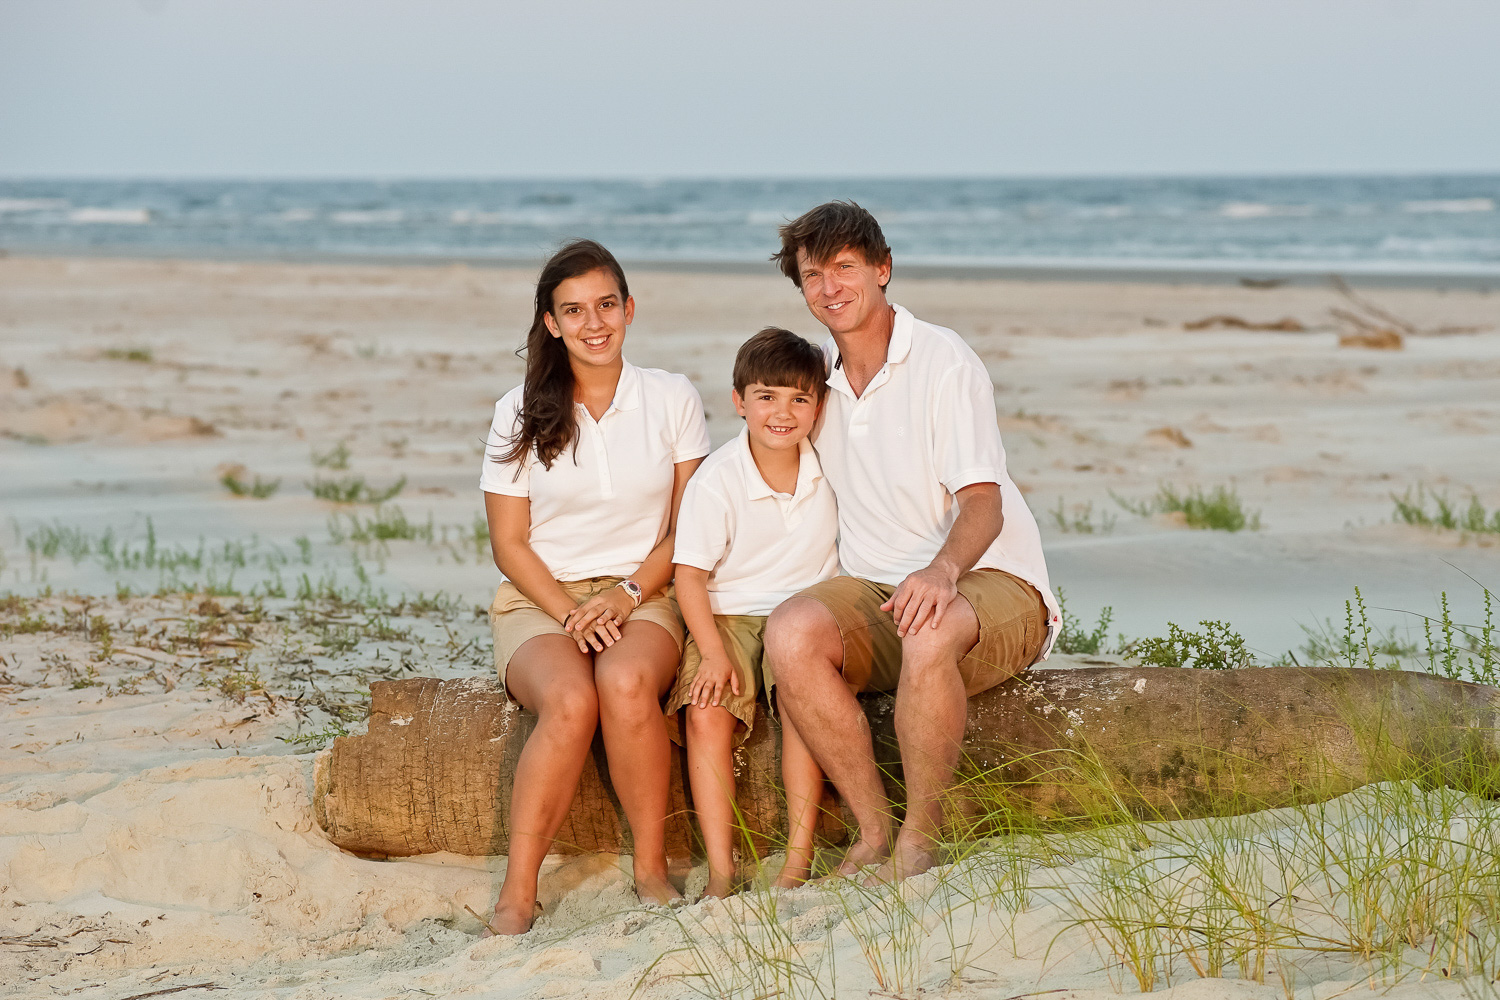 beach_portraits_beaufort-72.jpg